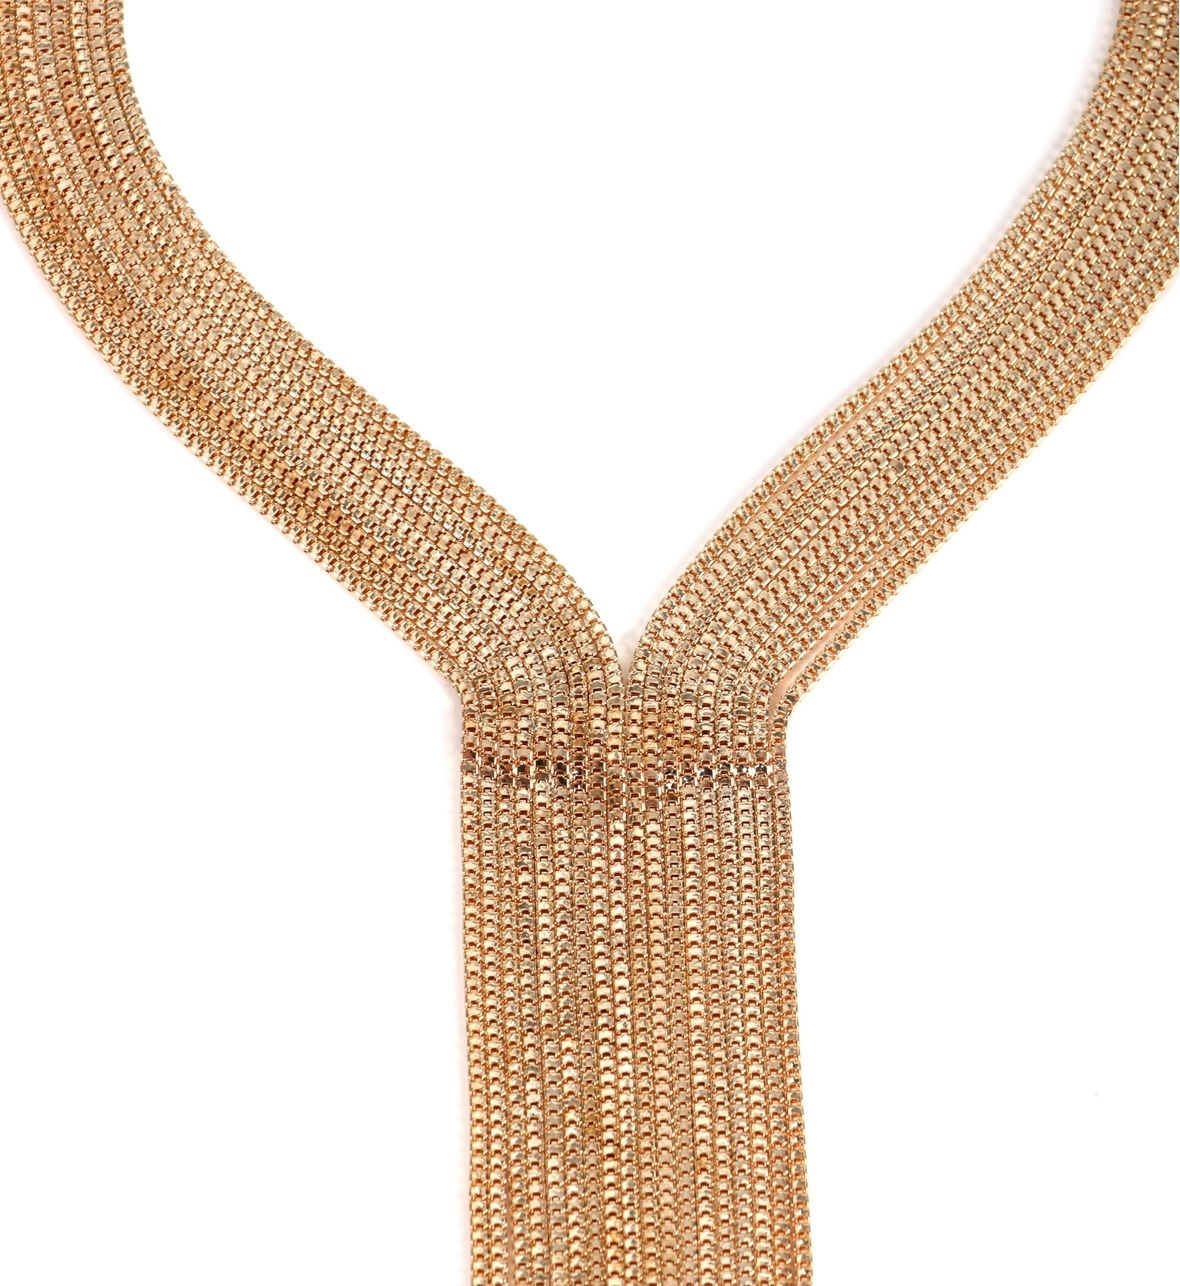 Now This Is A Statement! Necklace Features A Nine Row Box